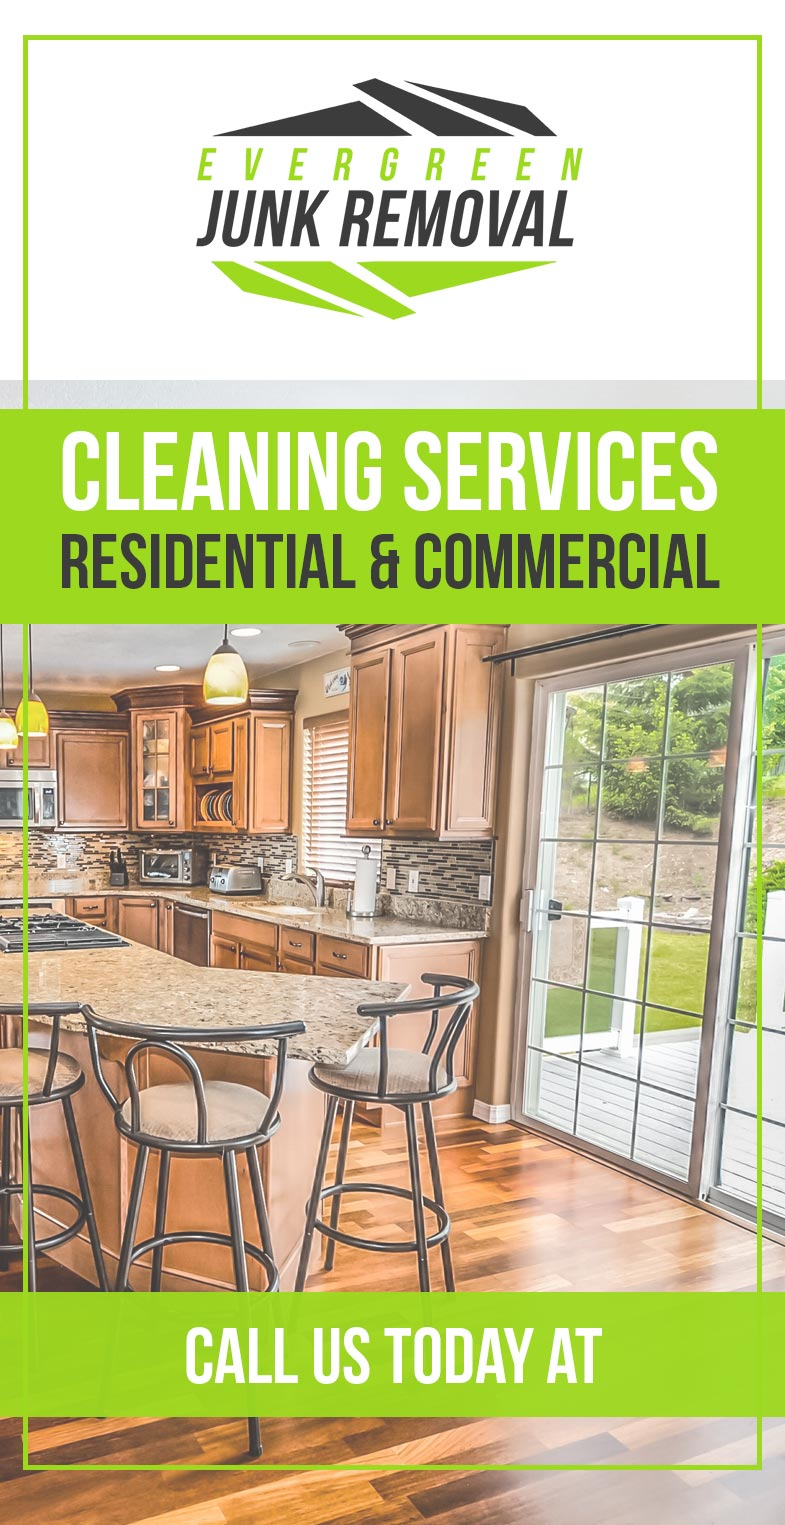 Pine Island Ridge Maid Services